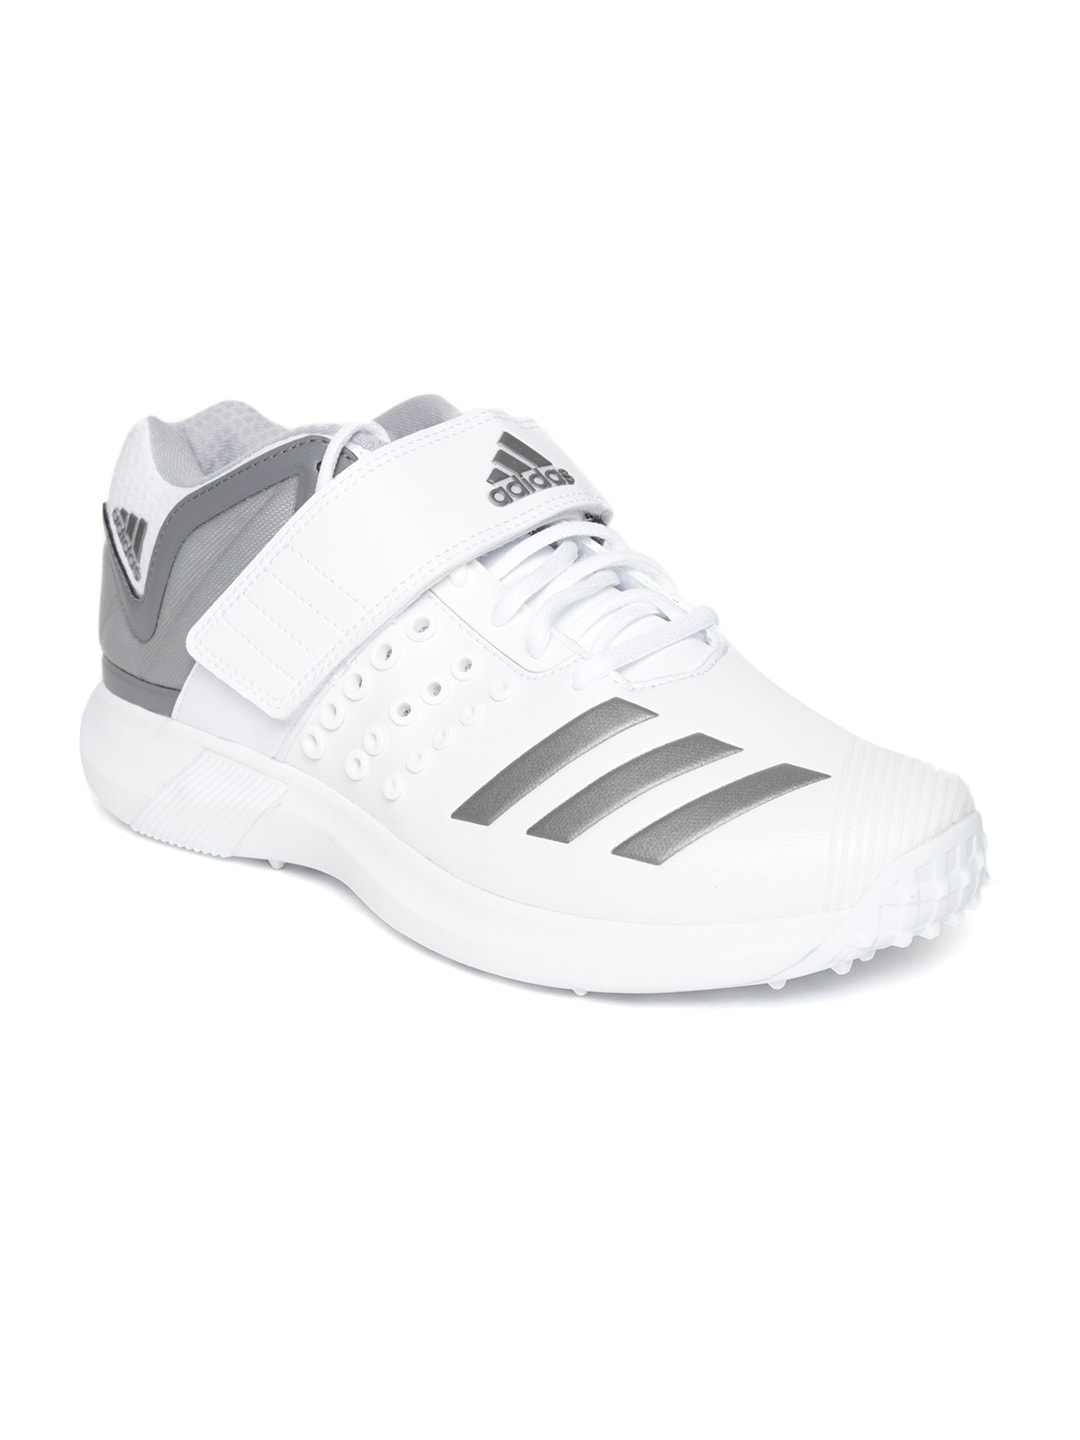 c752d230d34 Cricket Shoes Nails - Buy Cricket Shoes Nails online in India